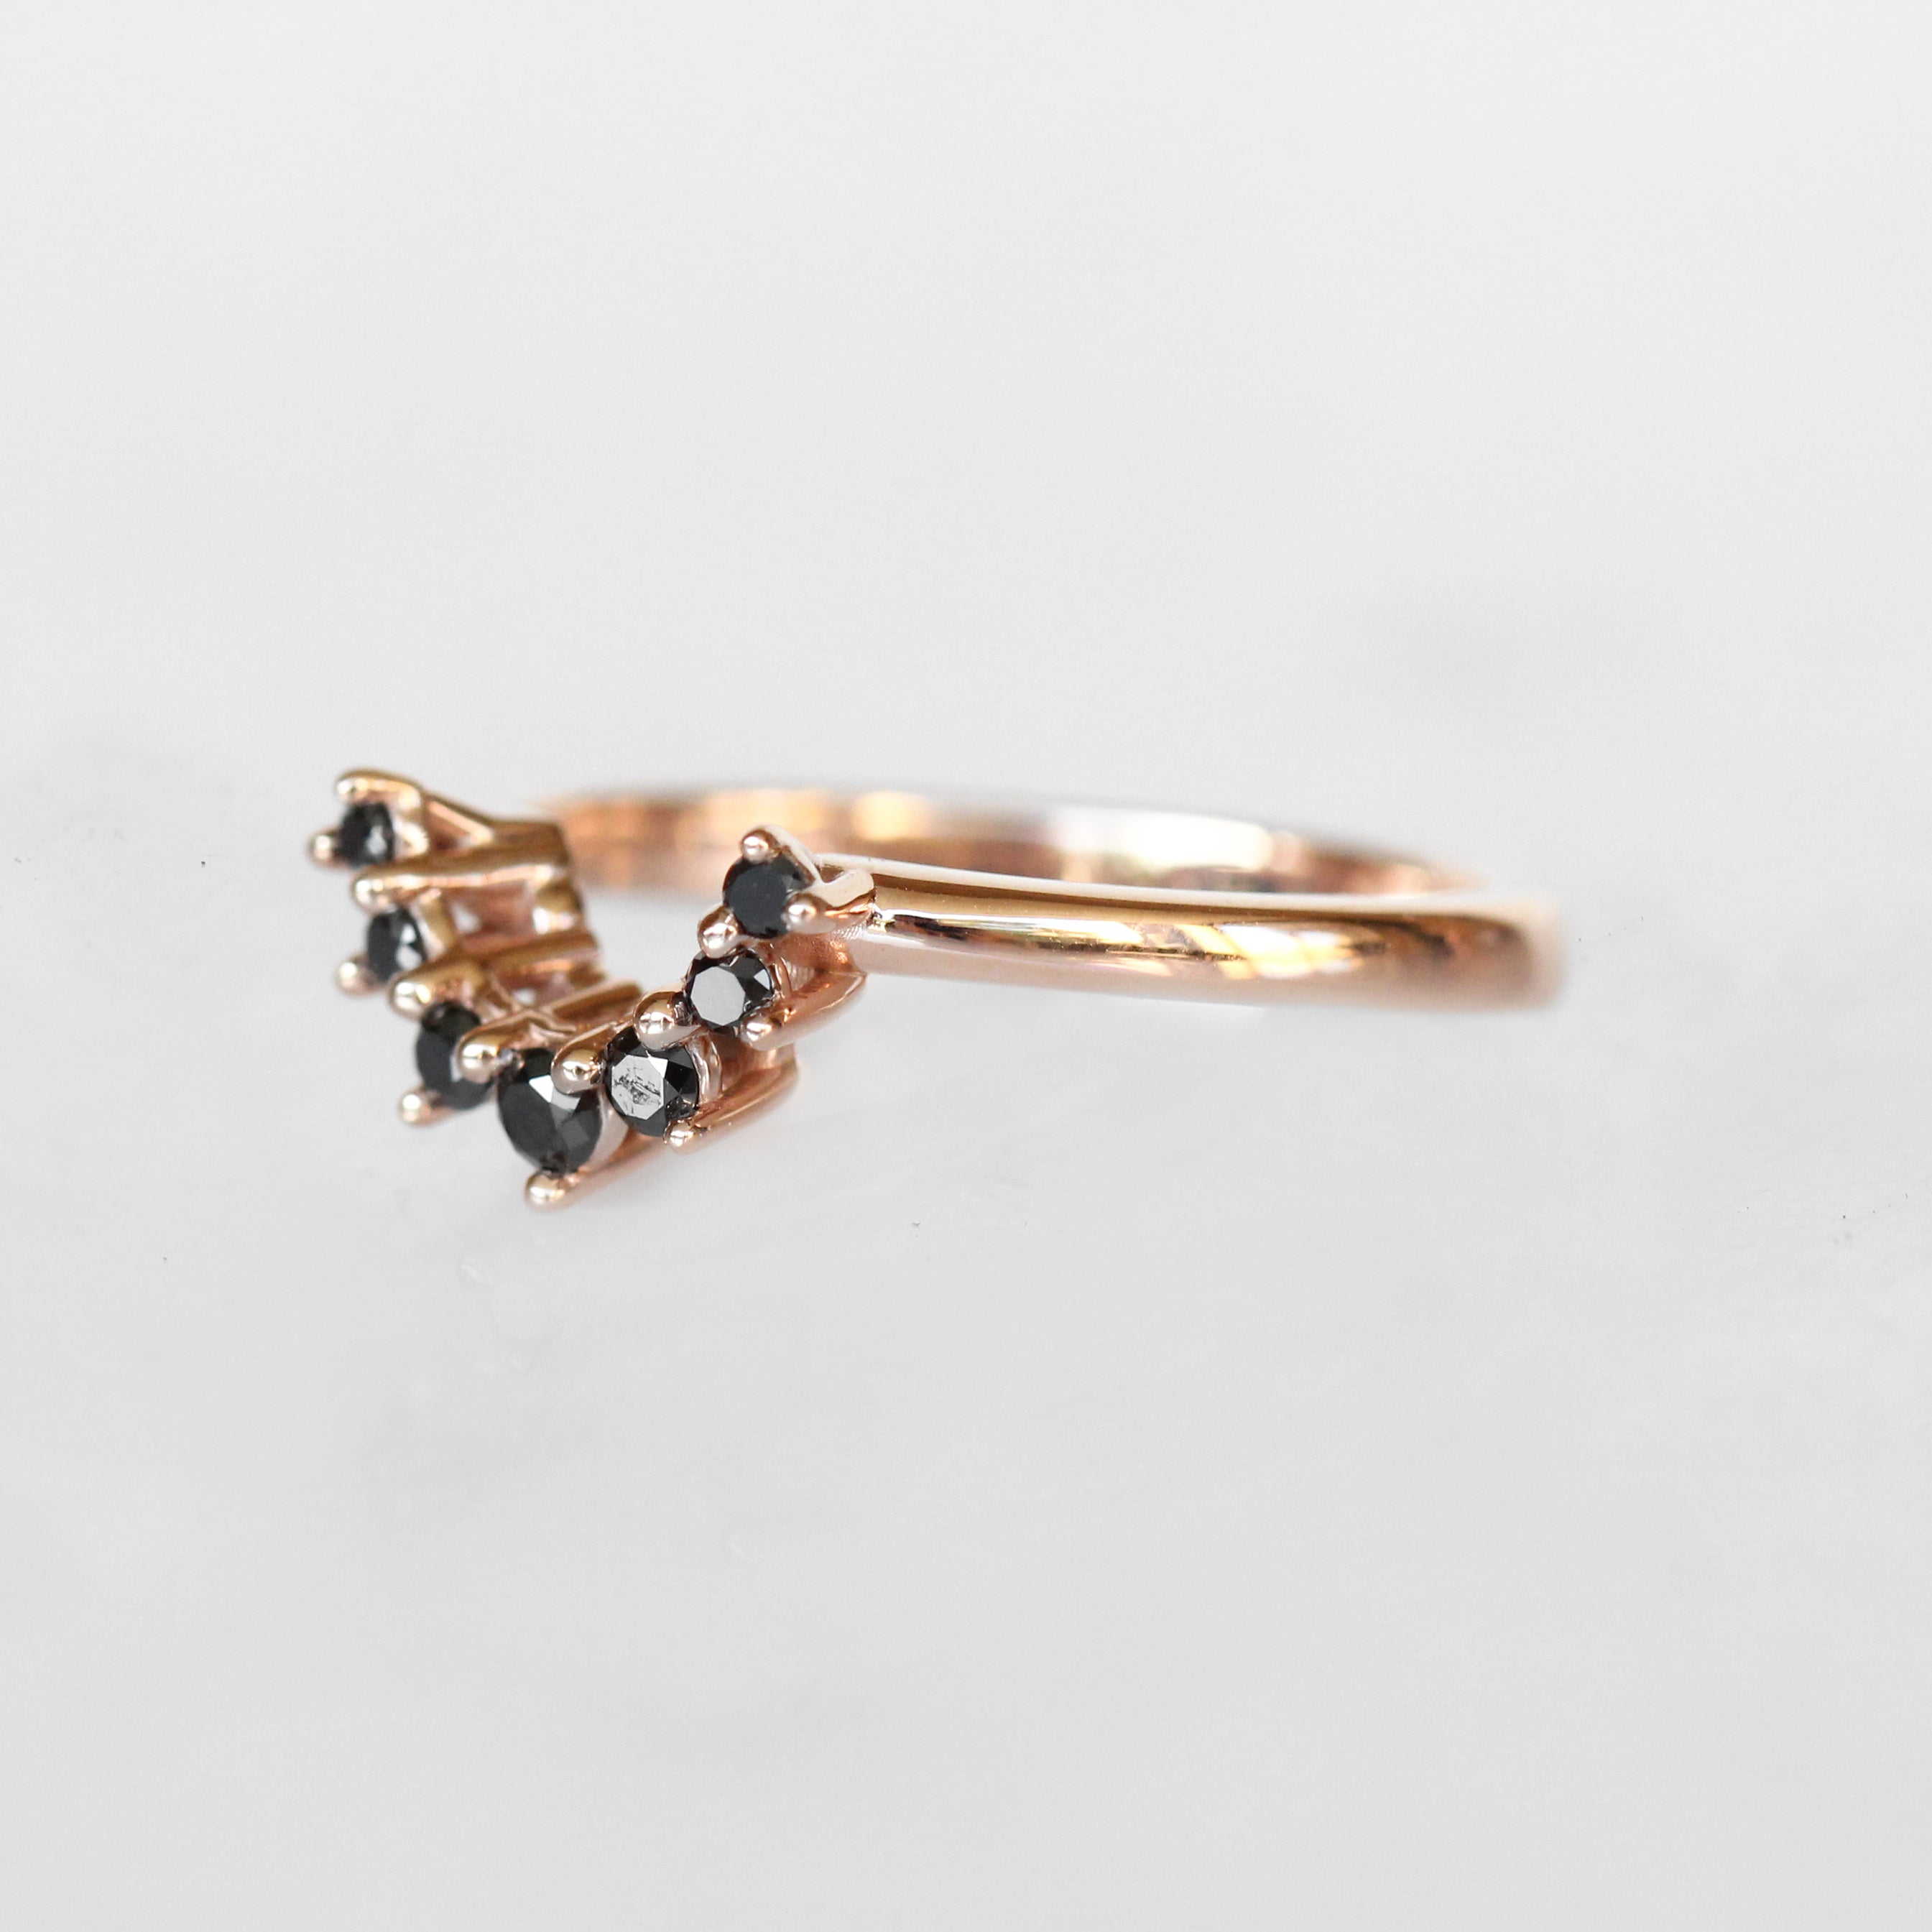 Ashlyn Ring with White Sapphire and Black Diamonds in 14k Gold - Celestial Diamonds ® by Midwinter Co.